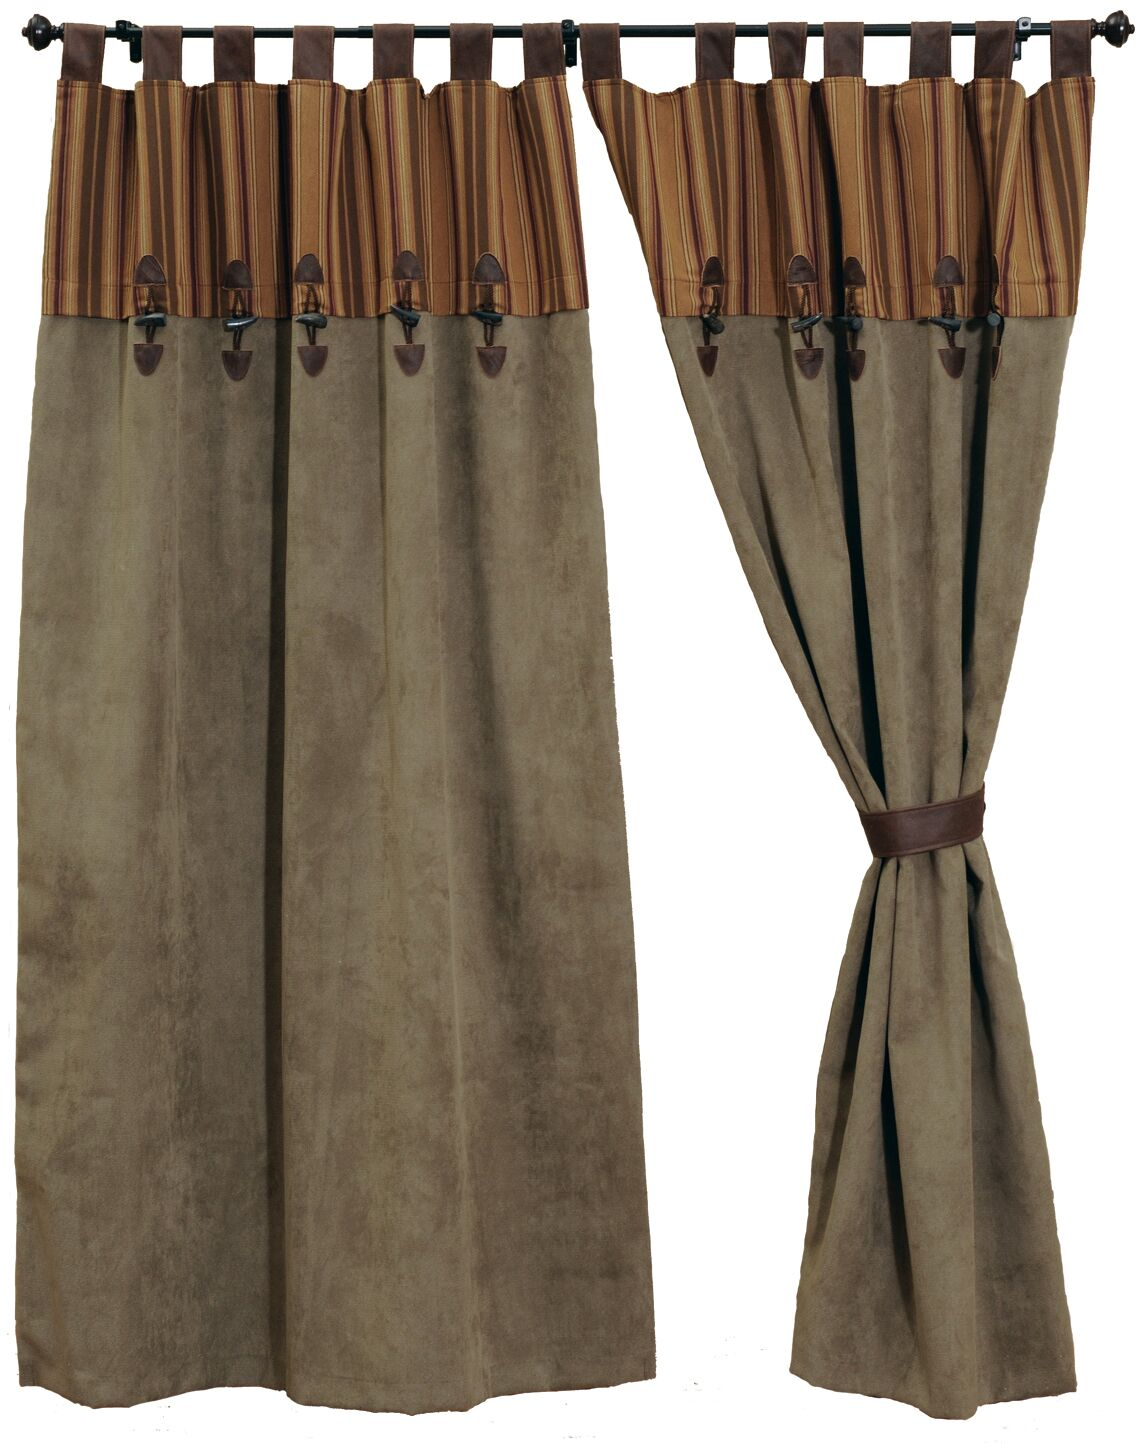 Autumn Leaf Drape Sets Wooded River - unique linens online